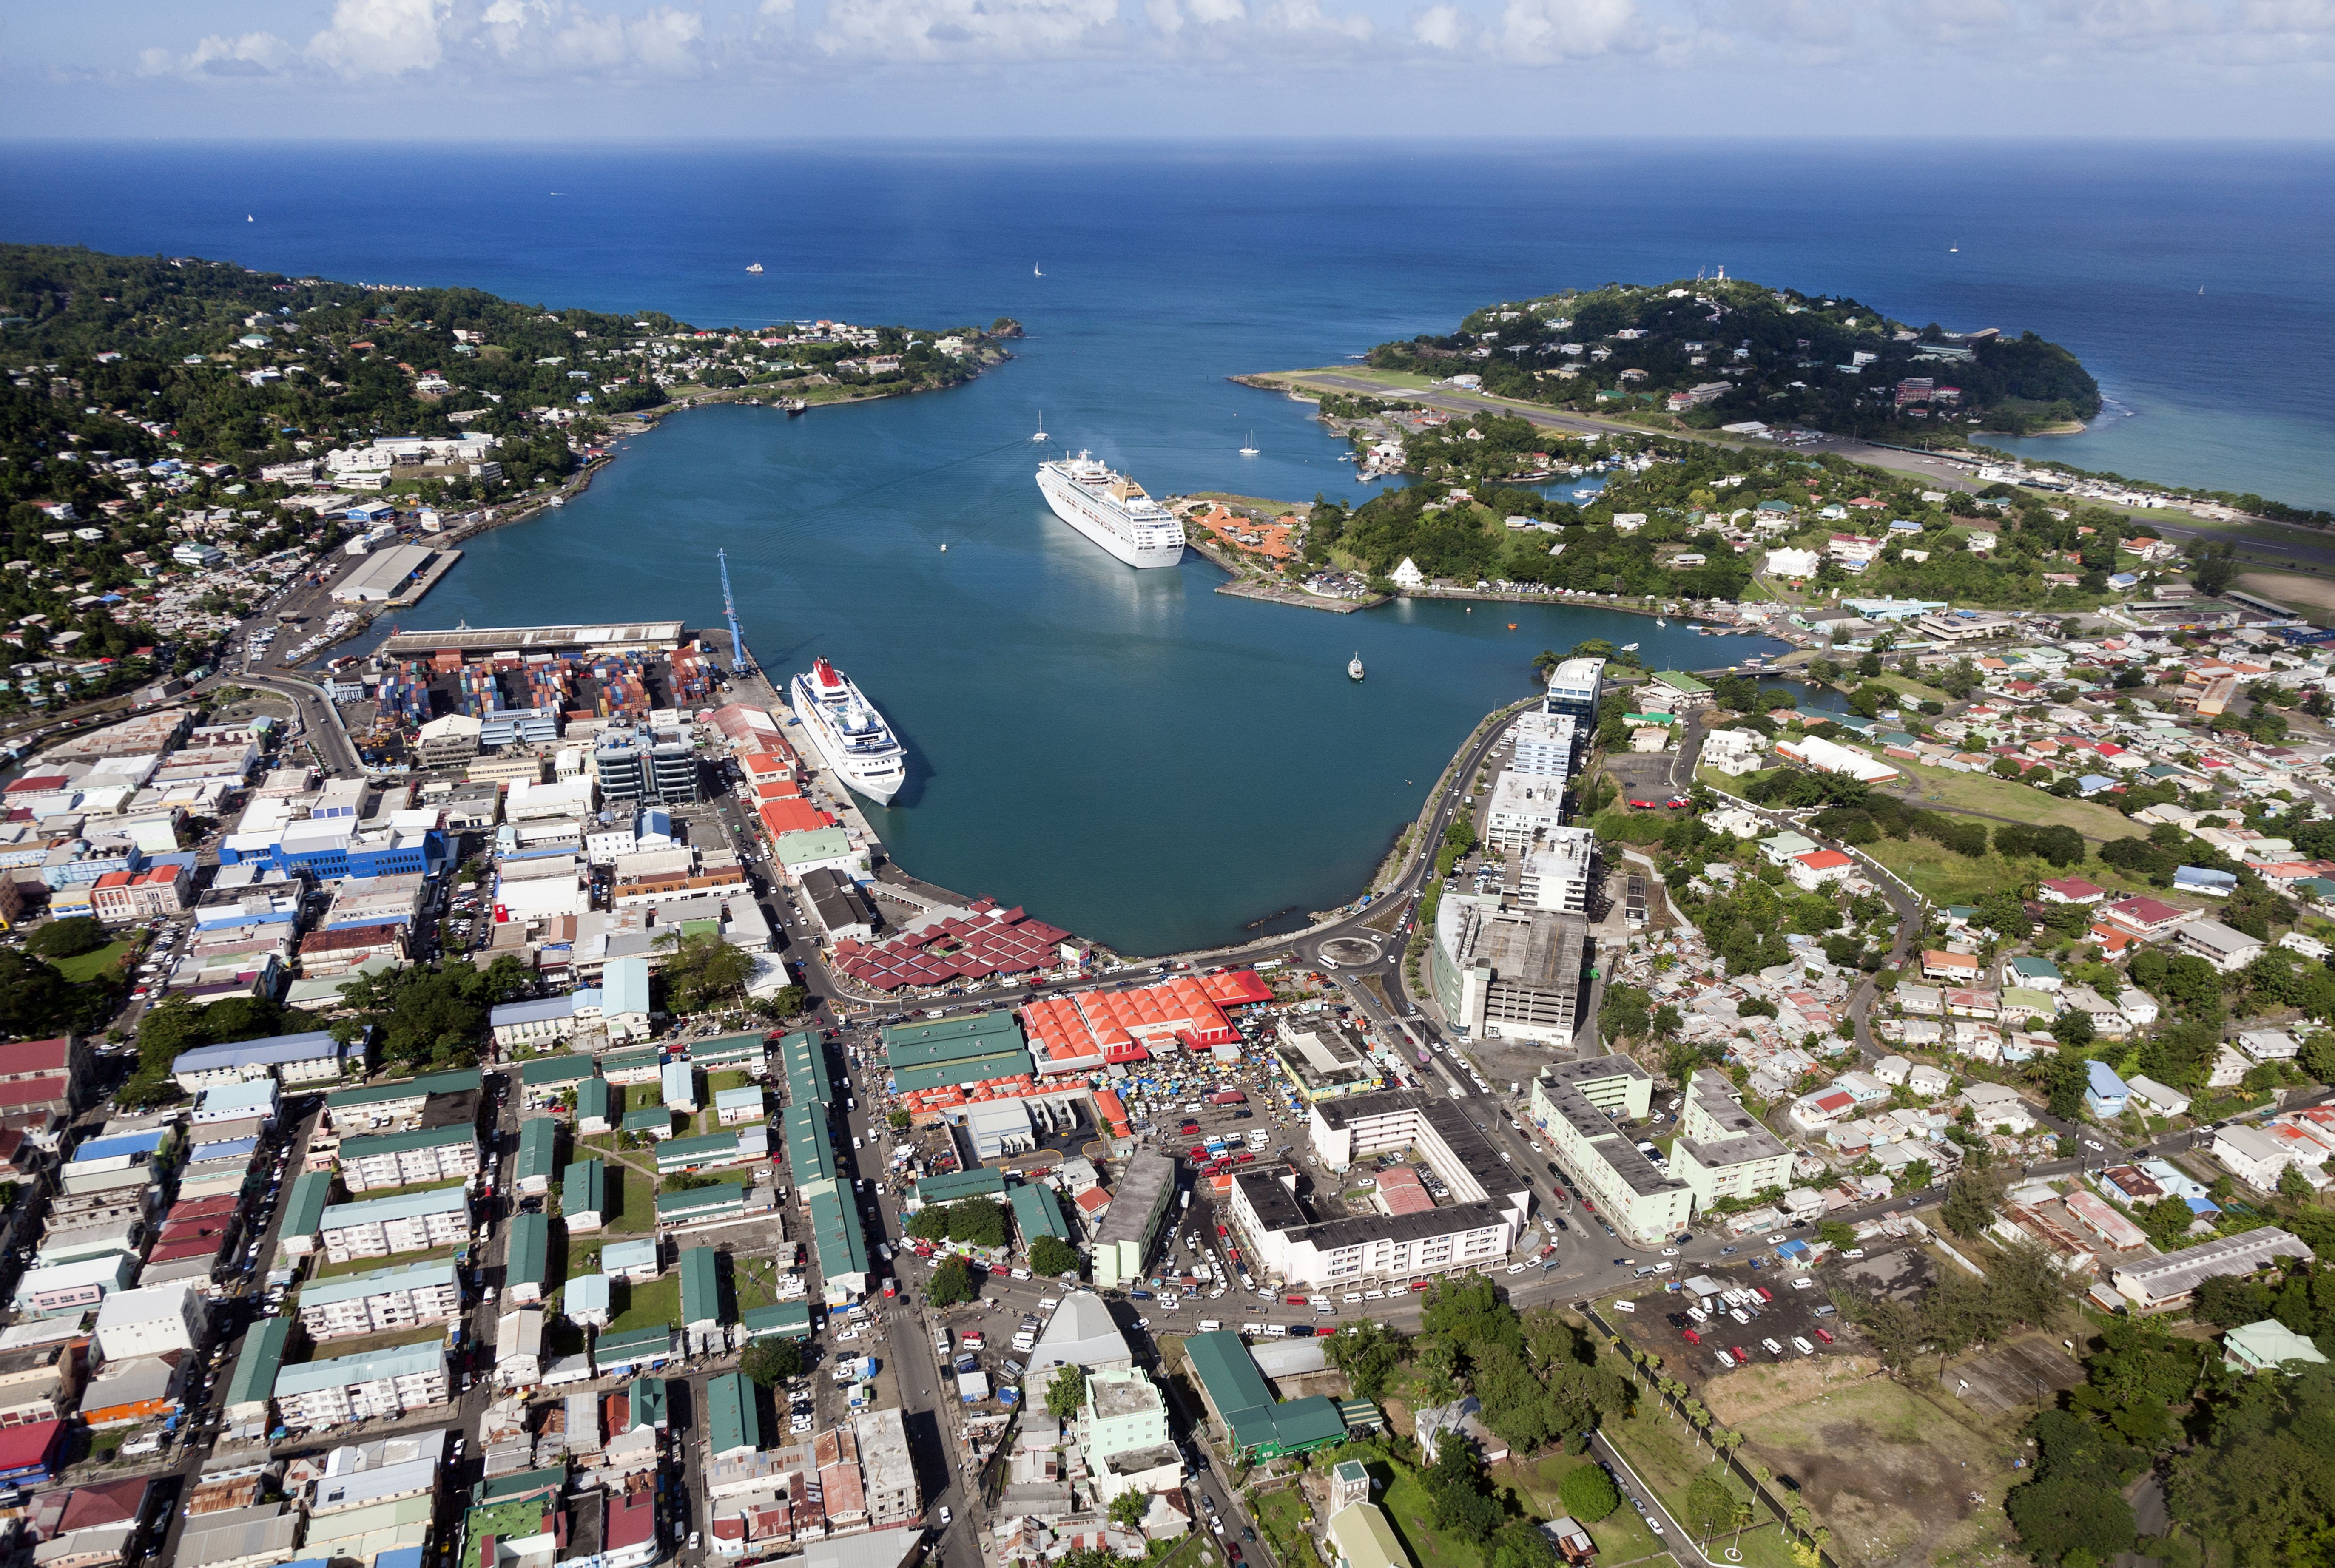 St. Lucia Health officials quarantine cruise ship with a confirmed measles case